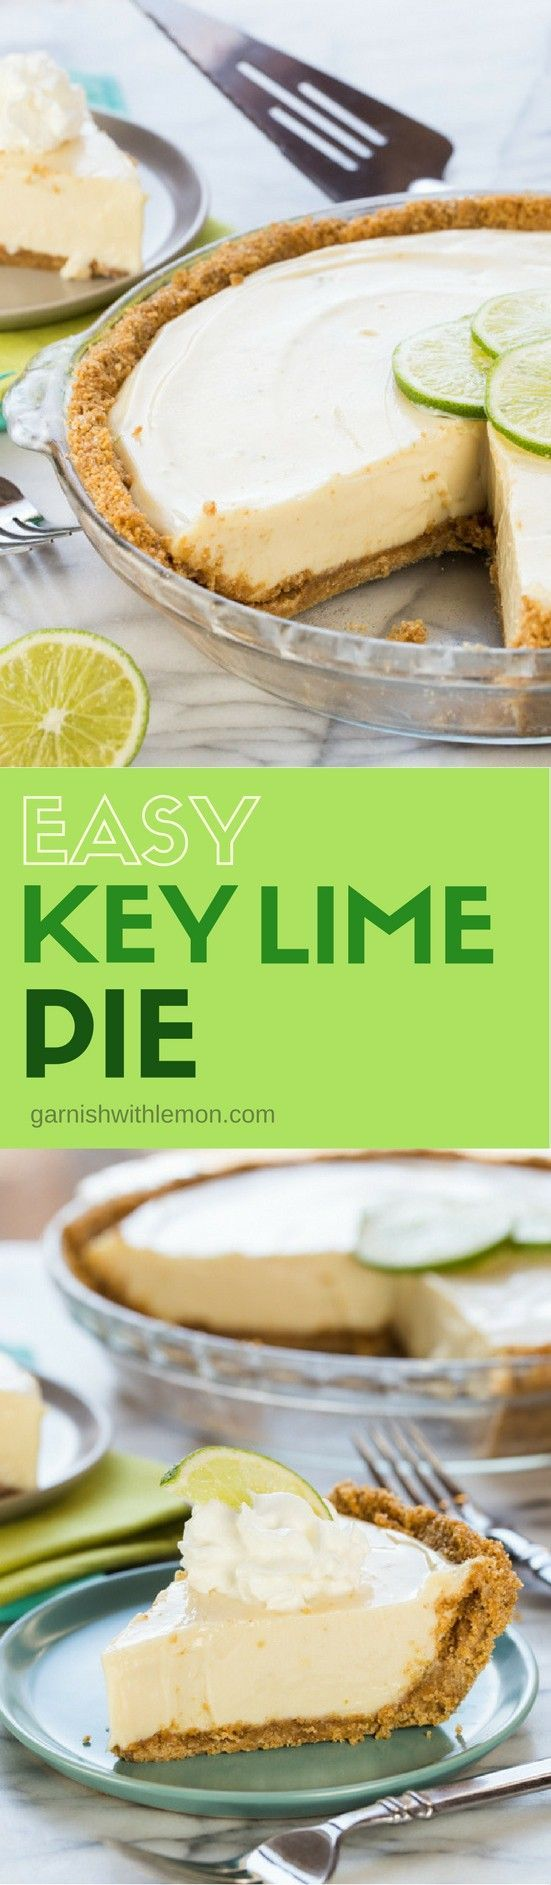 Made with just 4 ingredients, this Easy Key Lime Pie recipe is my favorite and is a perfect addition to any celebration! #keylime #pie #keylimepie #desserts